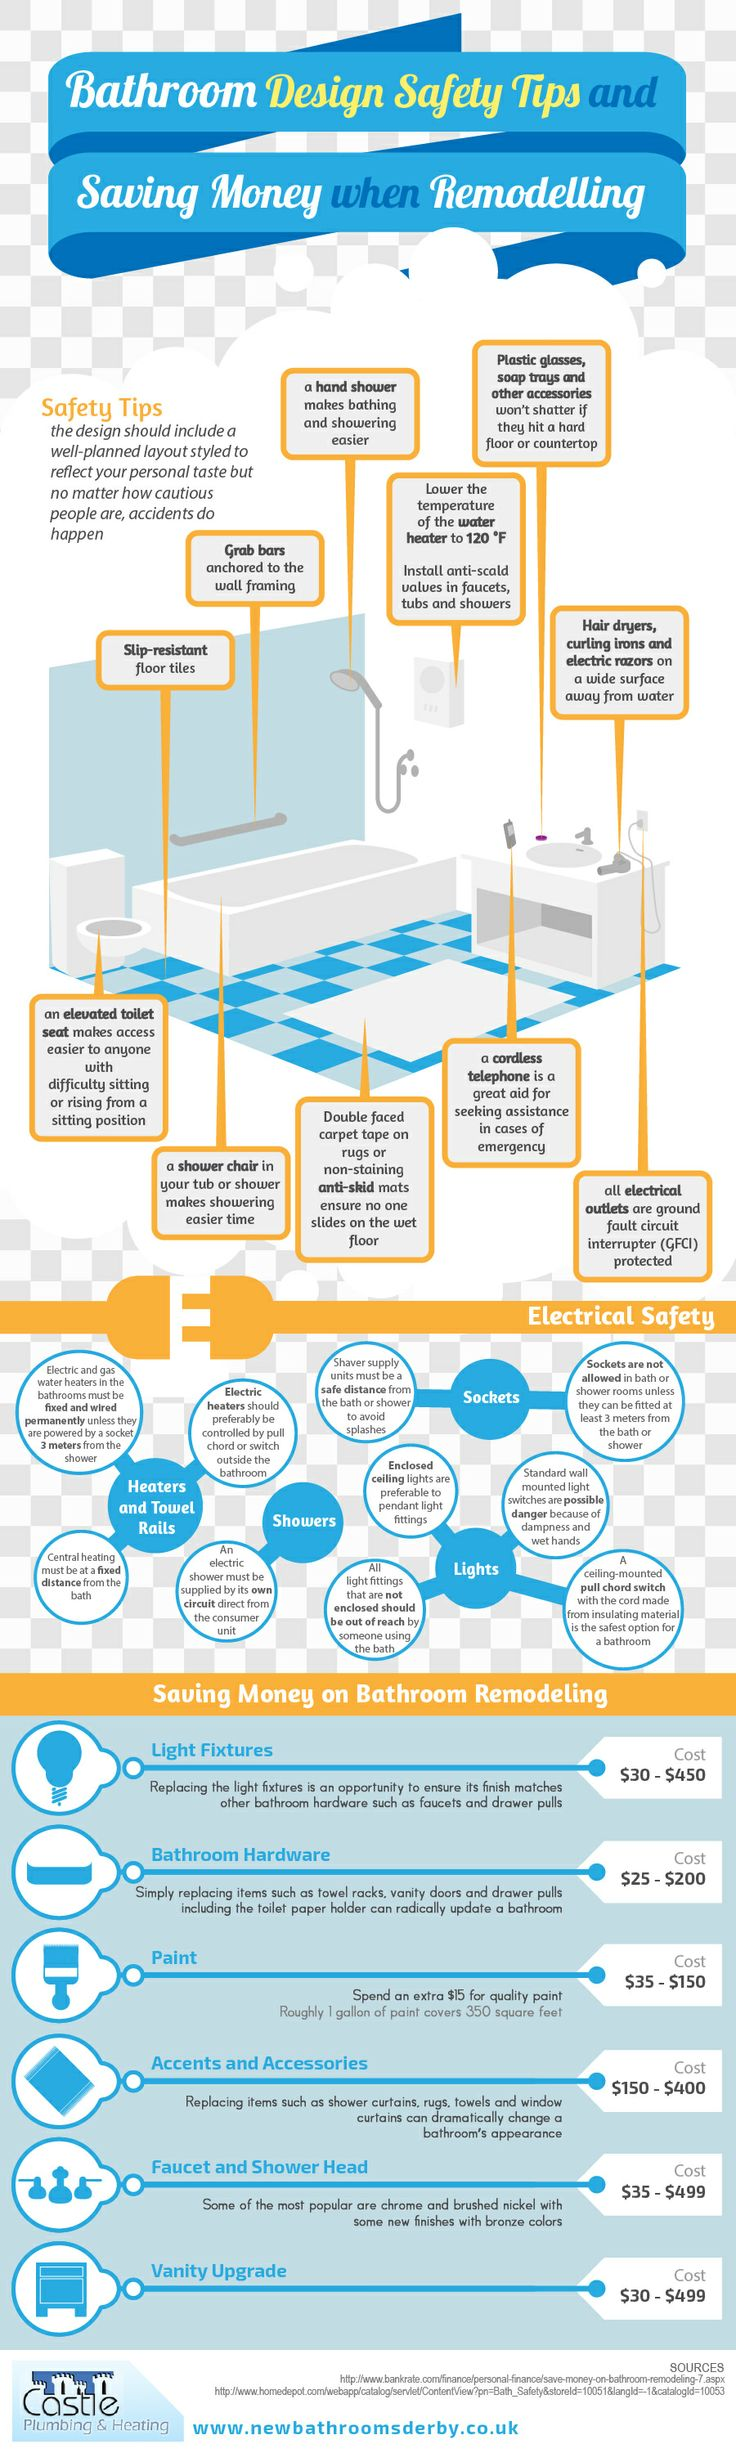 36 Best Visuals Infographics For Home Interiors Images On Circuit Breaker Moreover Ground Fault Interrupter Gfci Bathroom Design Safety Tips And Saving Money When Remodeling